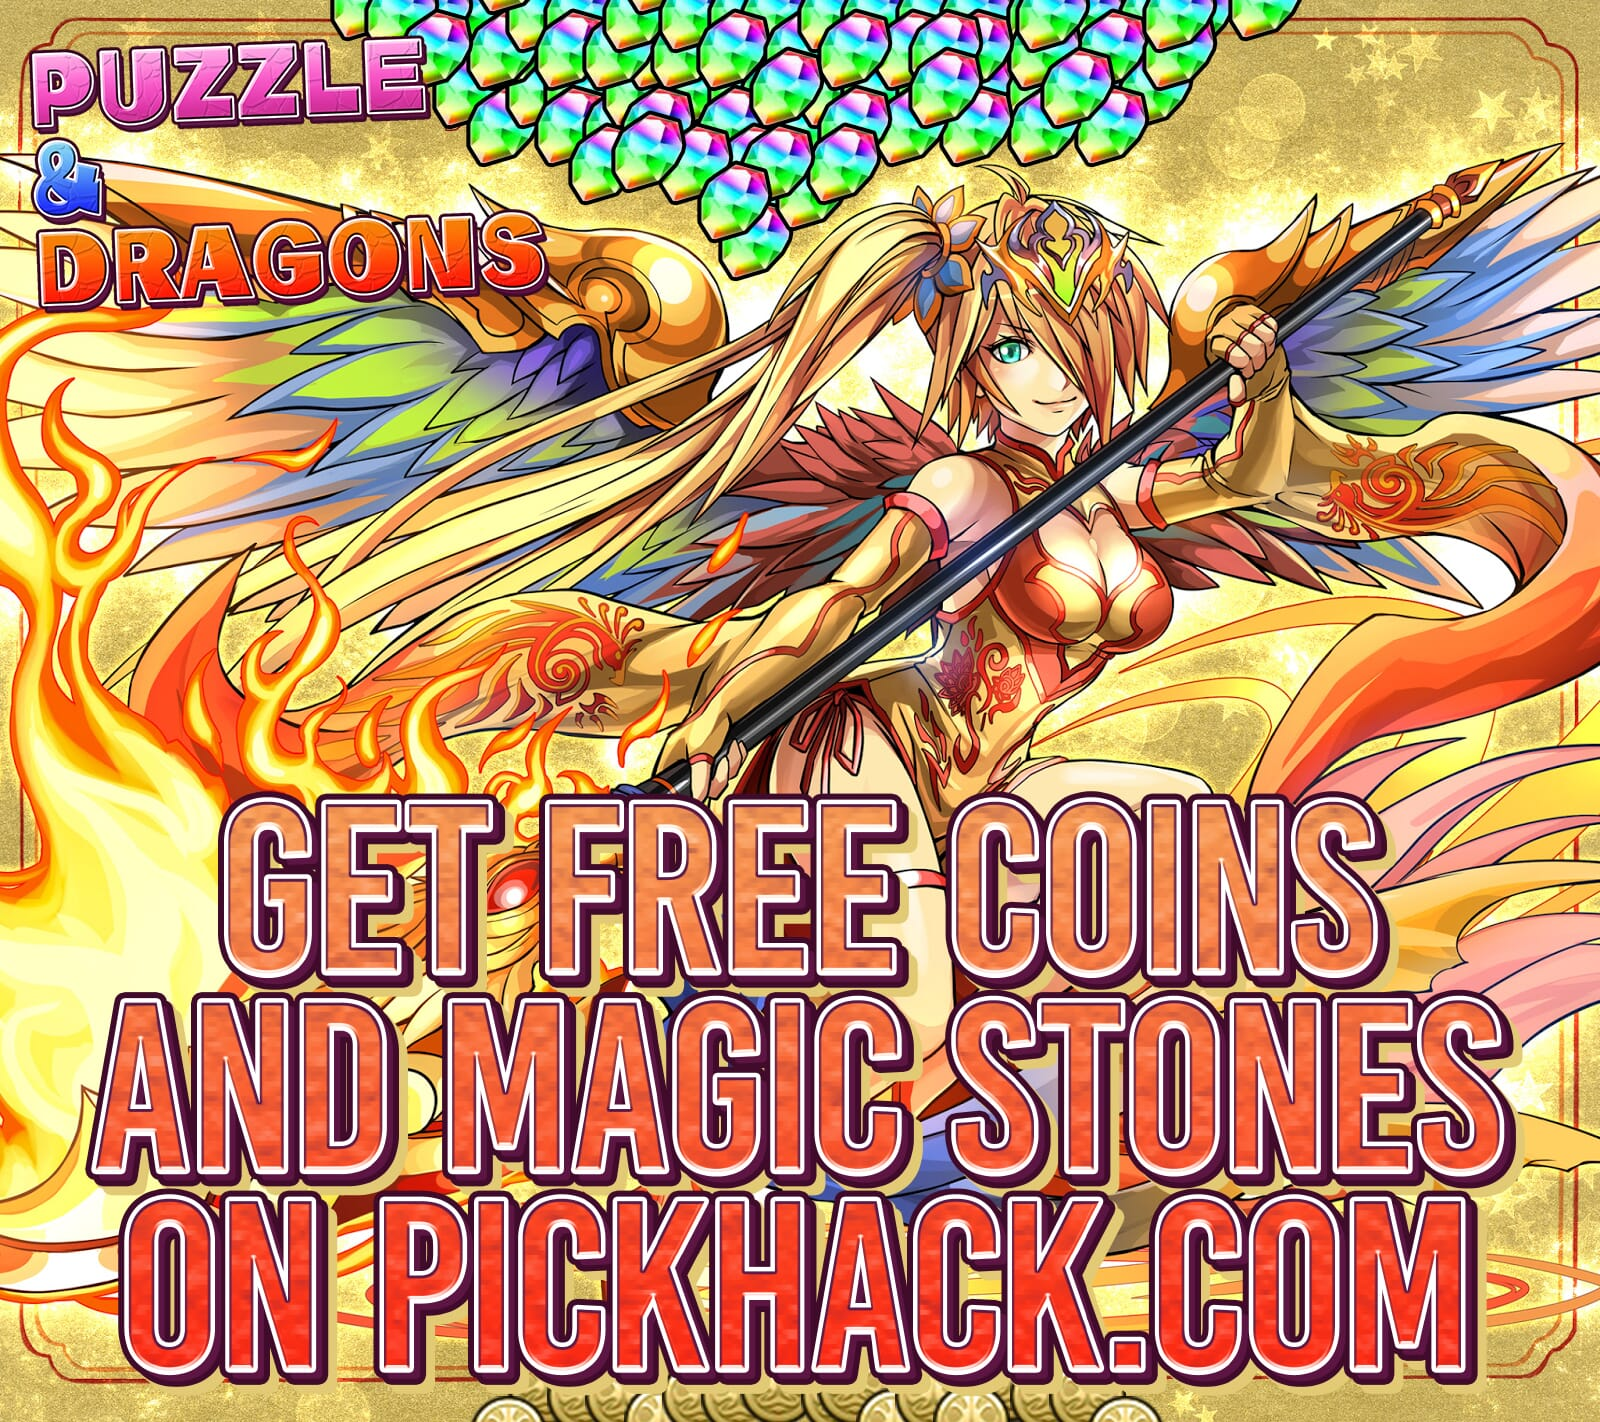 Image currently unavailable. Go to www.generator.pickhack.com and choose Puzzle & Dragons image, you will be redirect to Puzzle & Dragons Generator site.